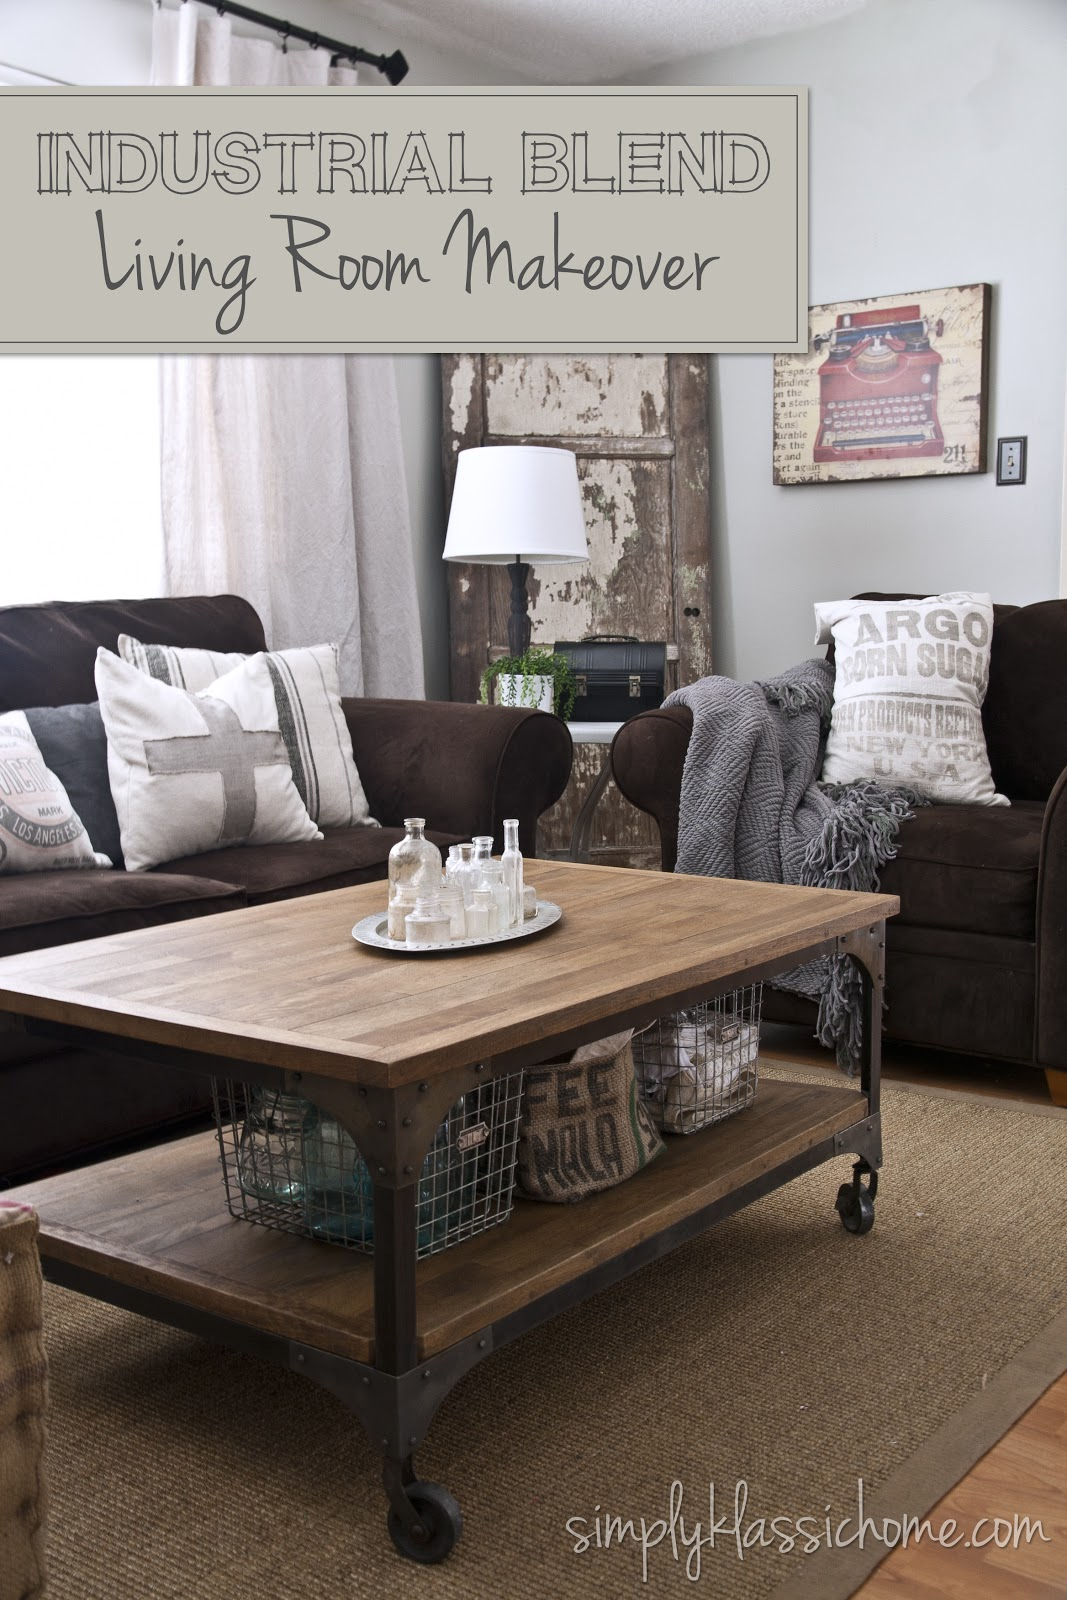 Industrial Blend Living Room Makeover Reveal - Yellow ...